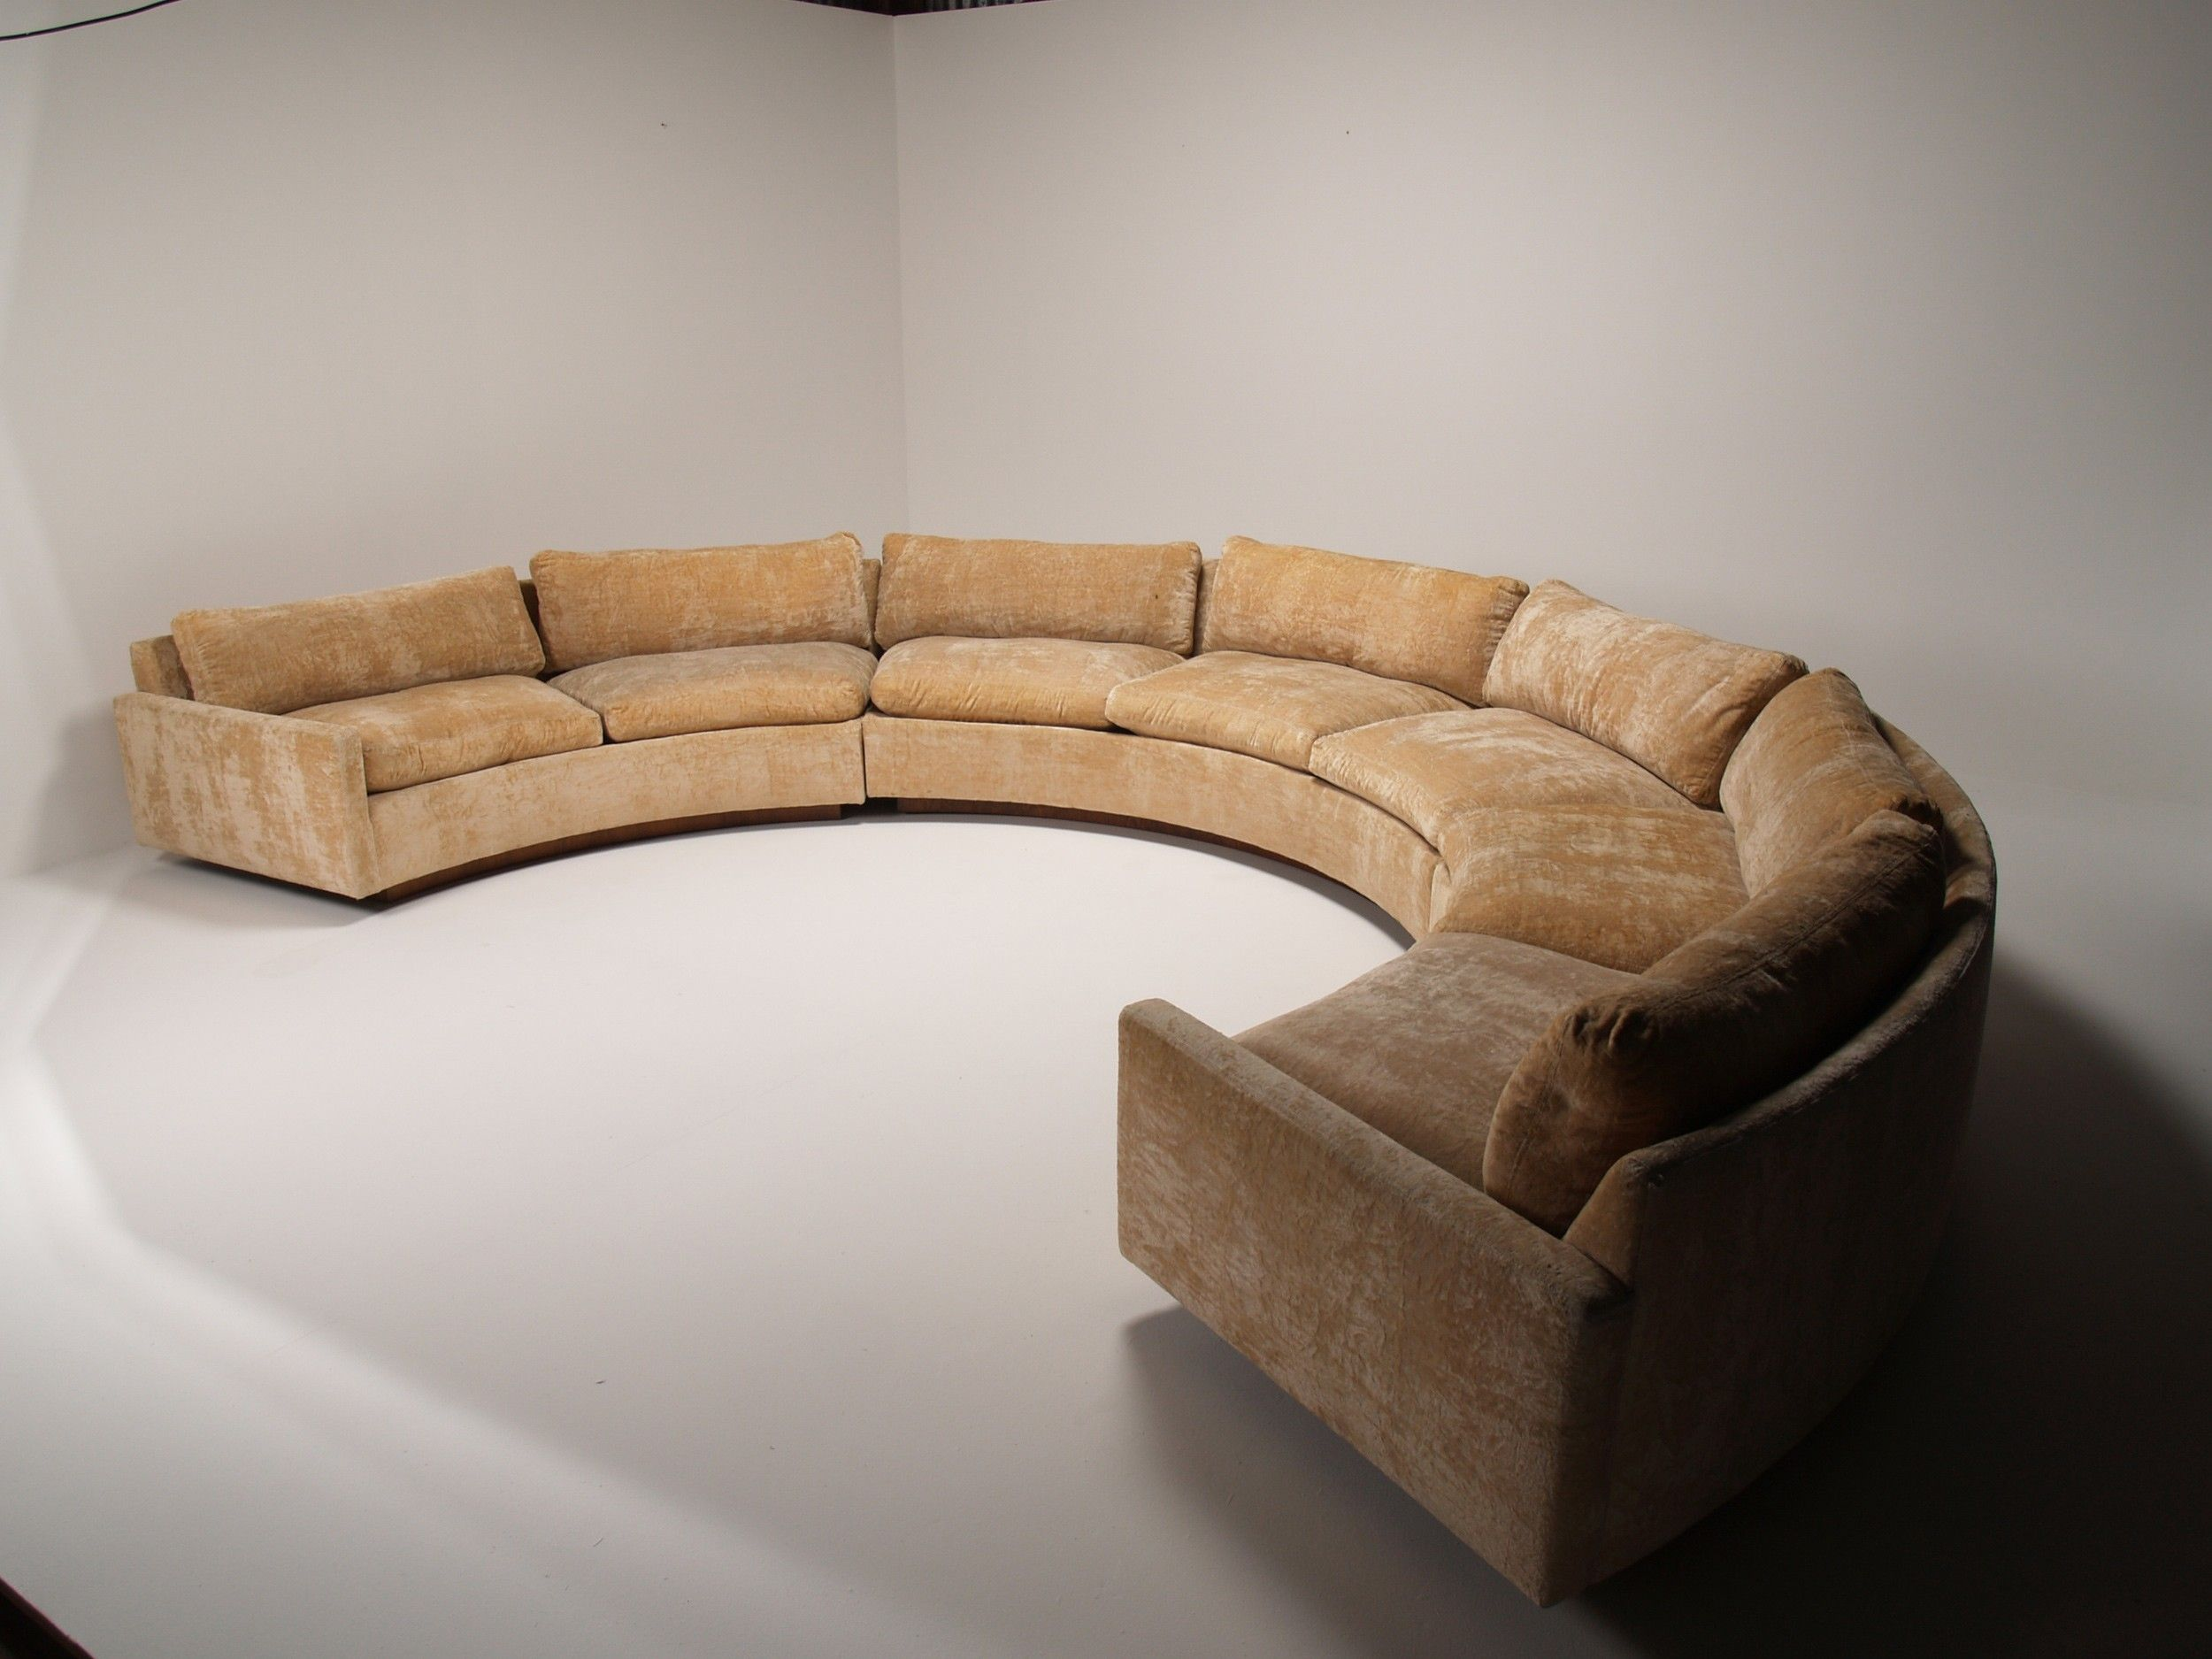 Circular Loveseat Sofa | Curved Sectional | Small Curved Couch : round sectional sofa - Sectionals, Sofas & Couches